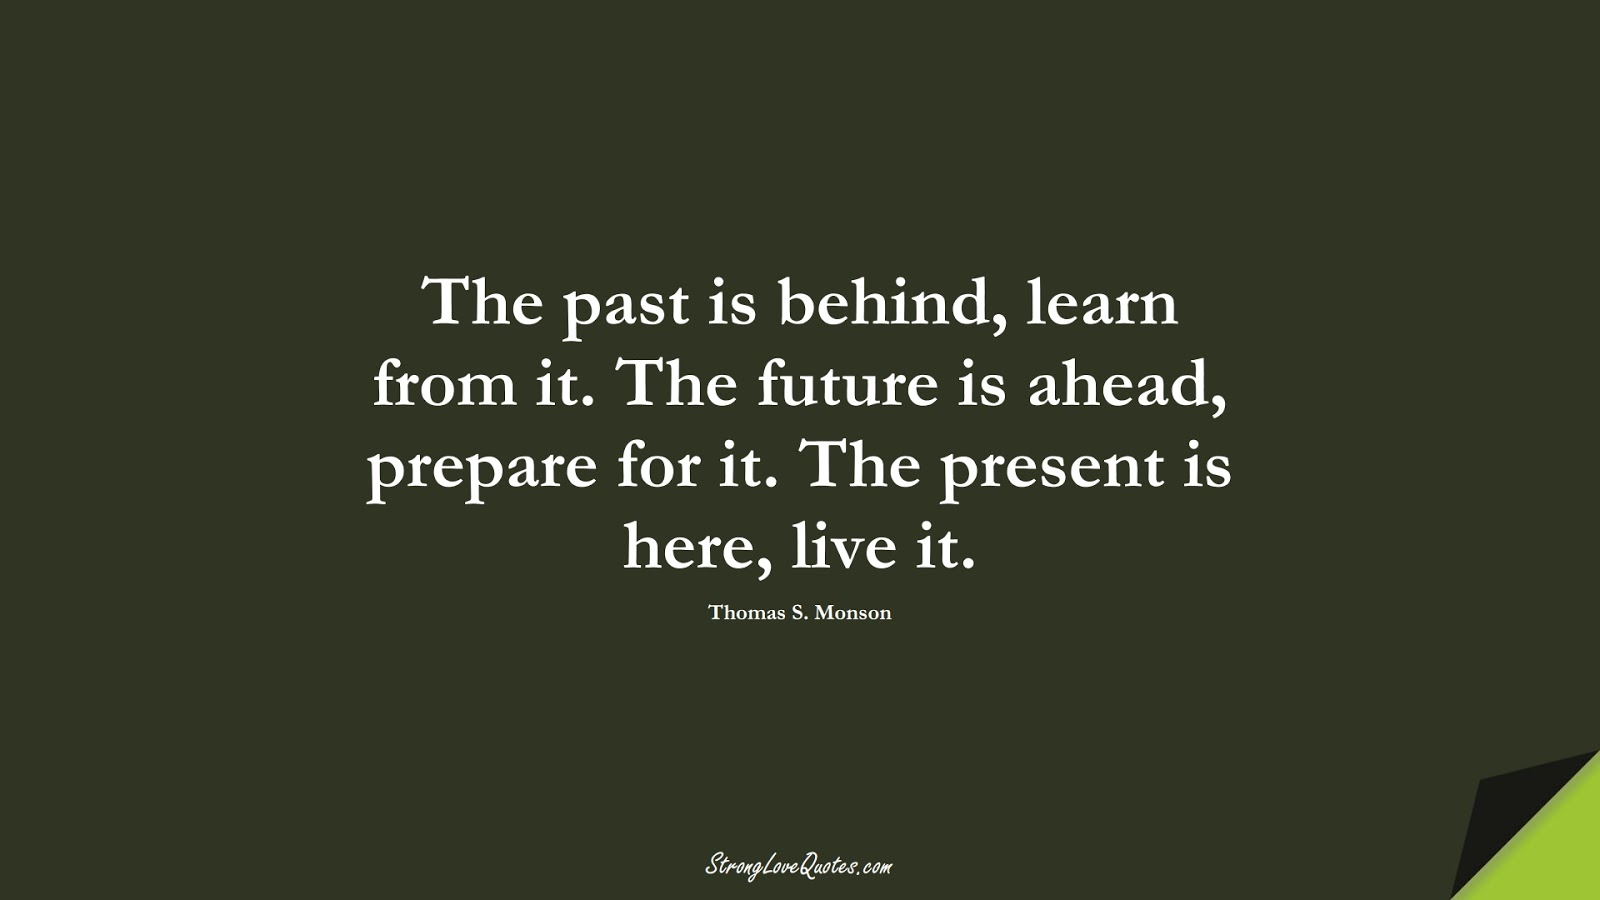 The past is behind, learn from it. The future is ahead, prepare for it. The present is here, live it. (Thomas S. Monson);  #LearningQuotes